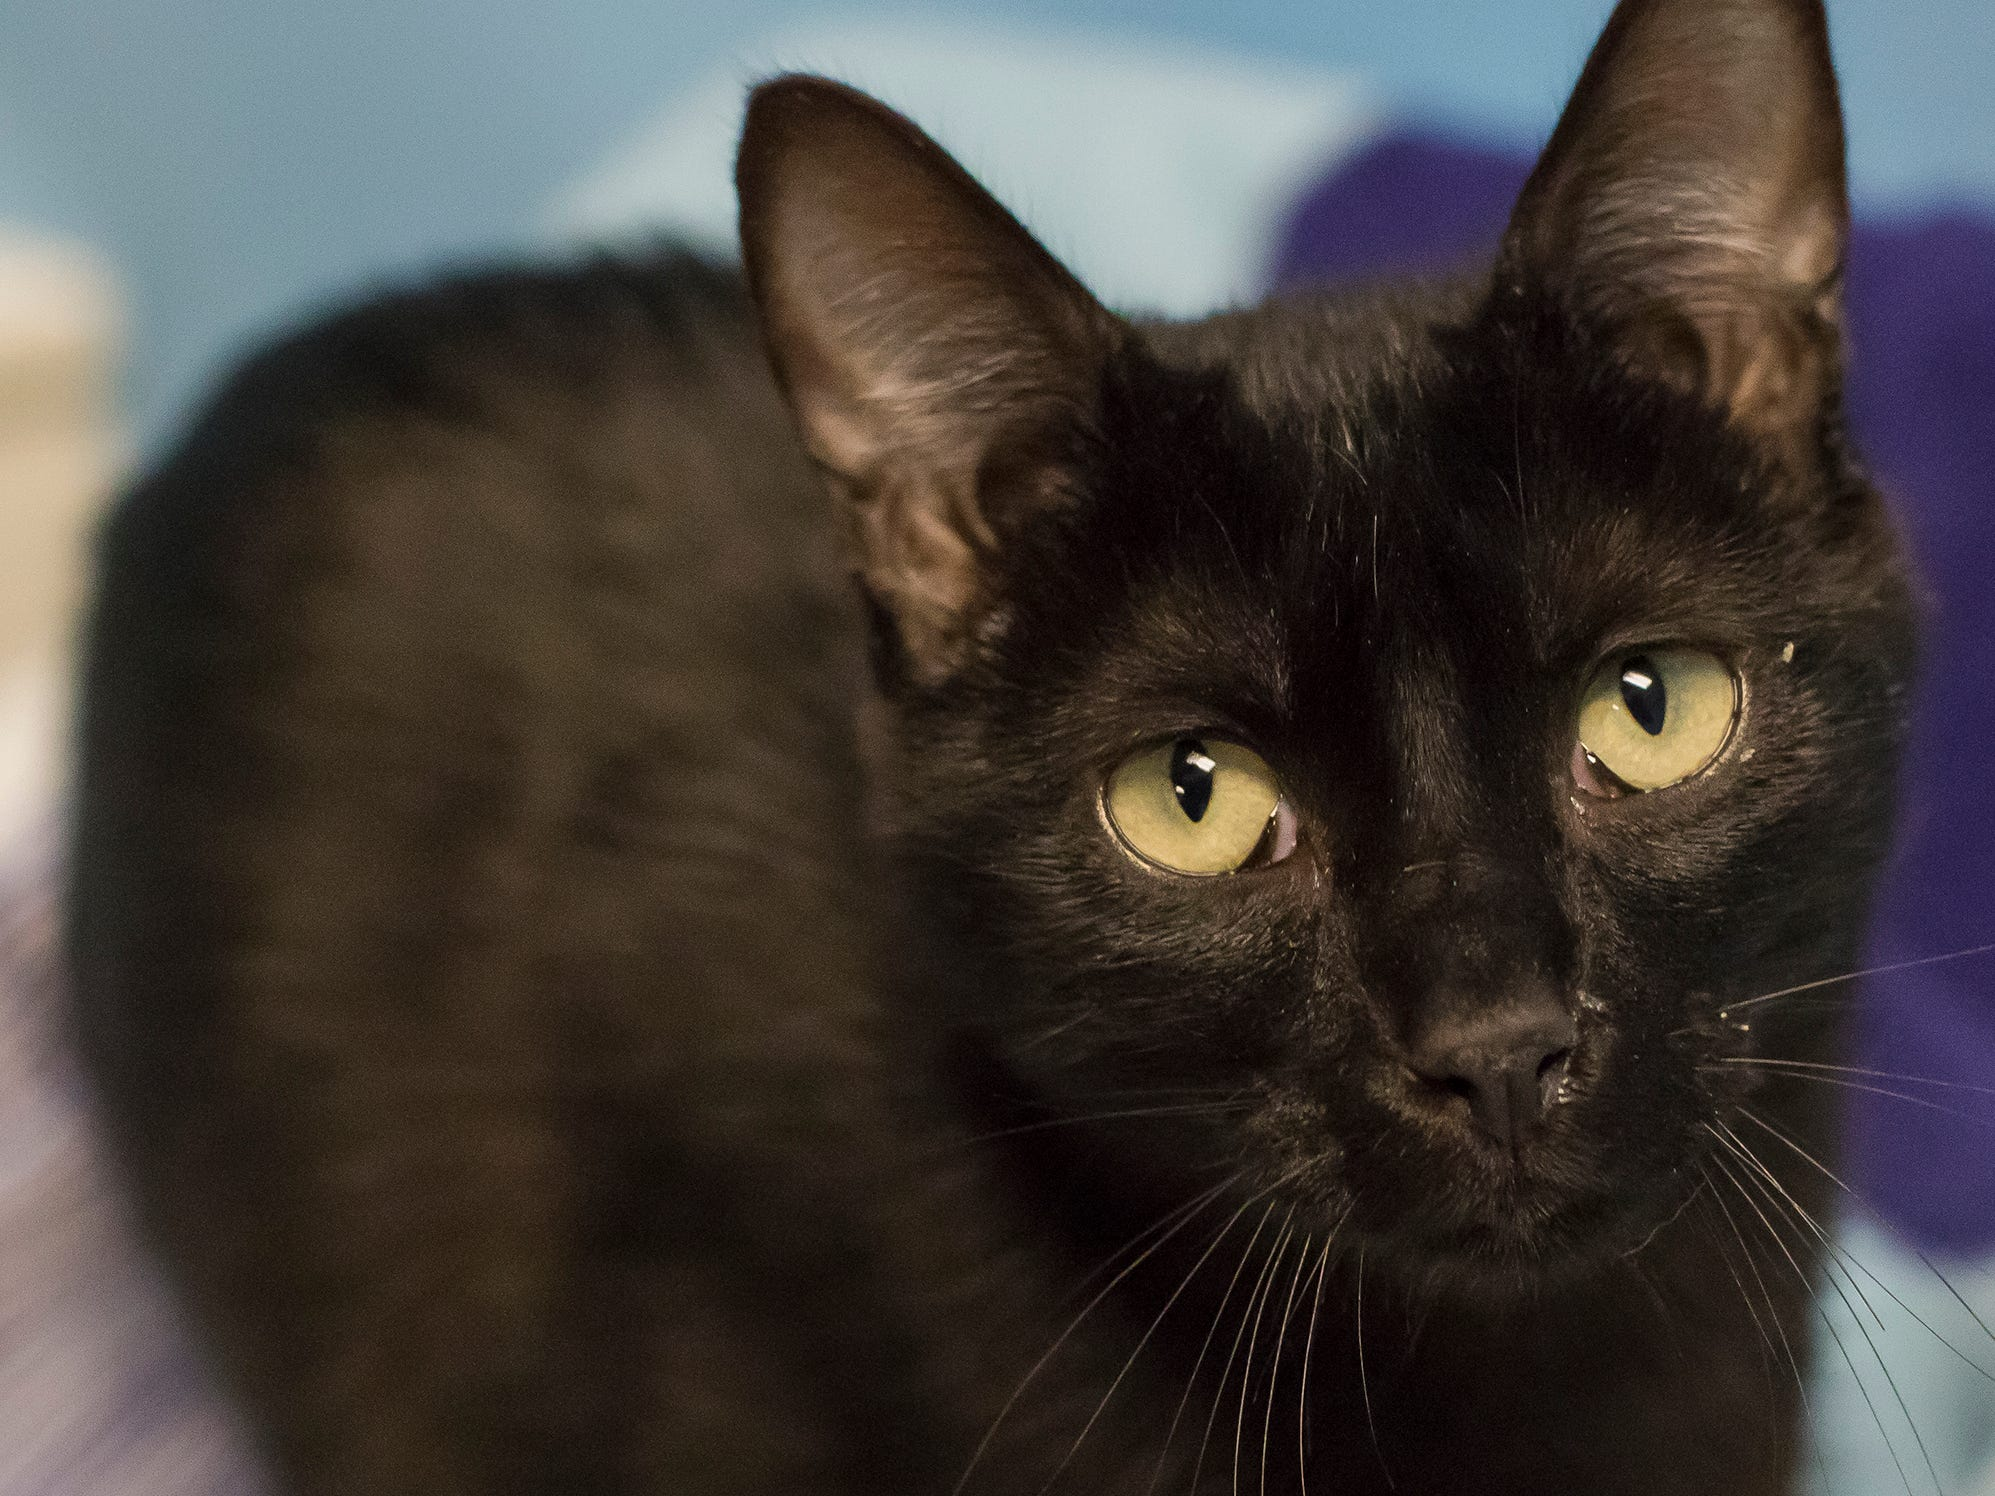 Billy Jo is a friendly neutered male who loves attention. The 7-month-old is very friendly. He and his brother Big Jo were hand raised and will enjoy company.